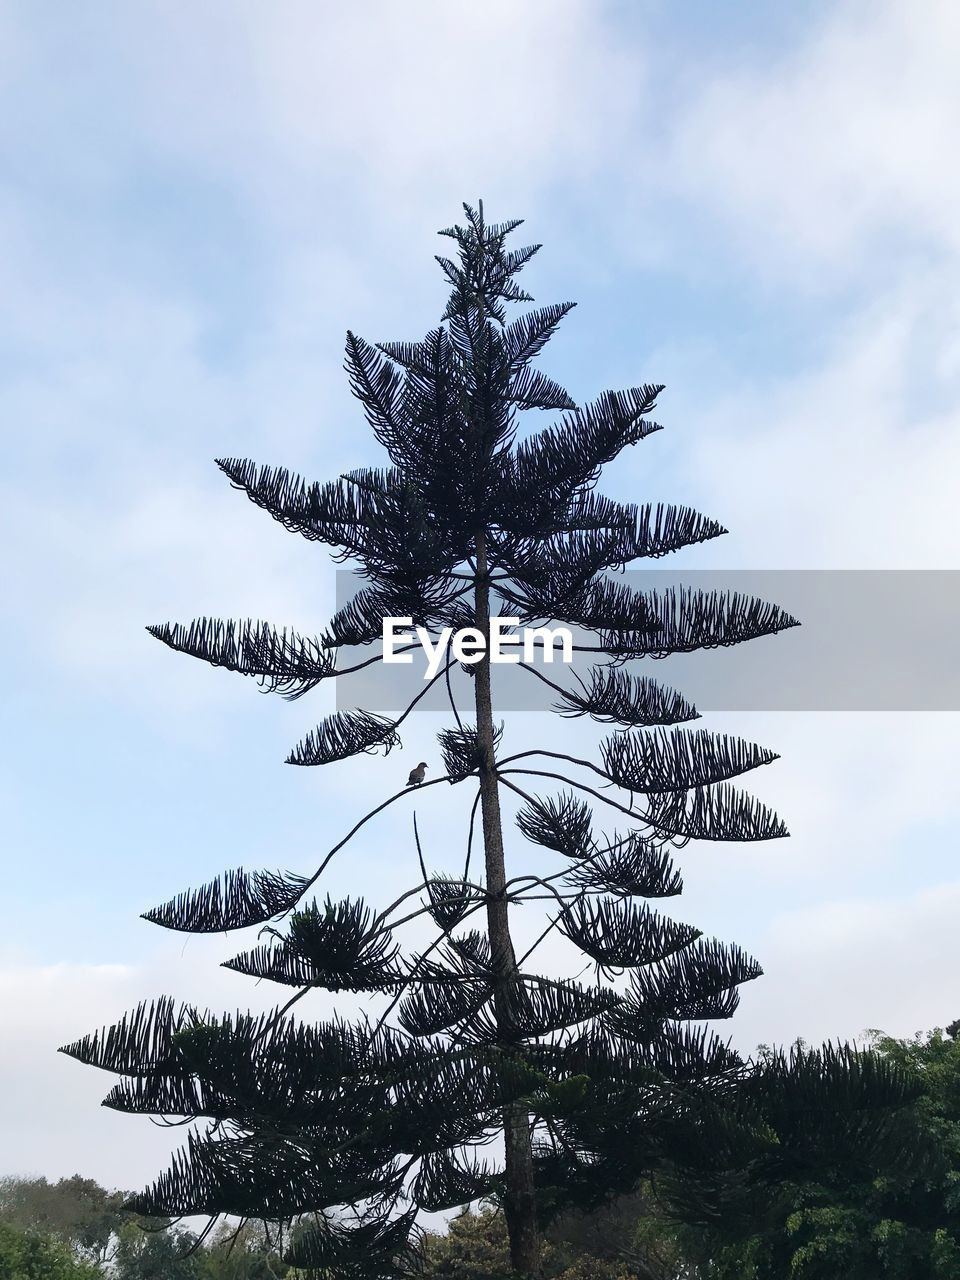 tree, sky, palm tree, cloud - sky, low angle view, growth, outdoors, day, nature, no people, green color, beauty in nature, close-up